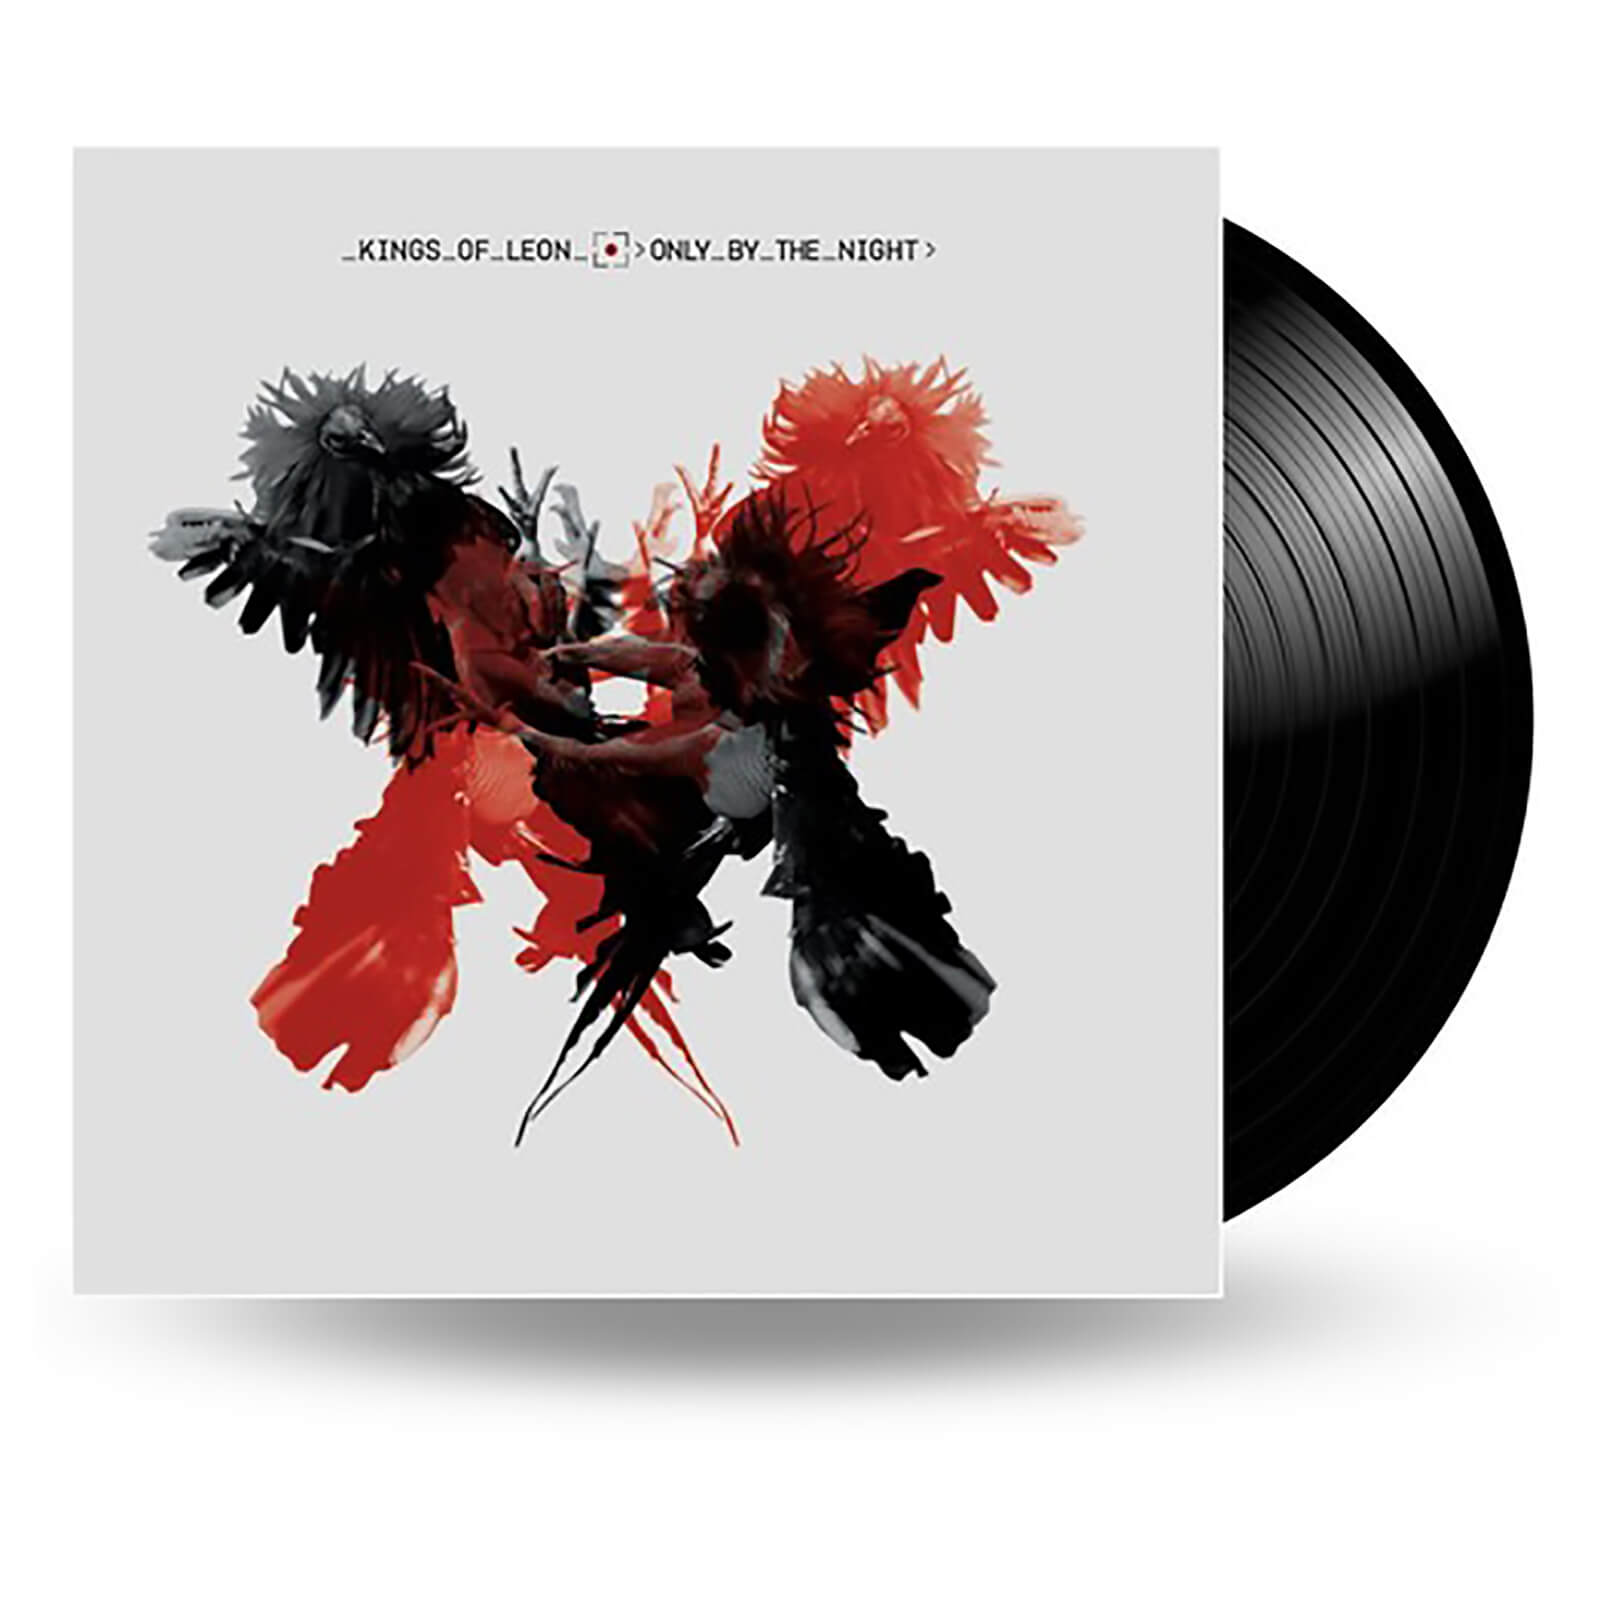 Kings Of Leon - Only By The Night - Vinyl